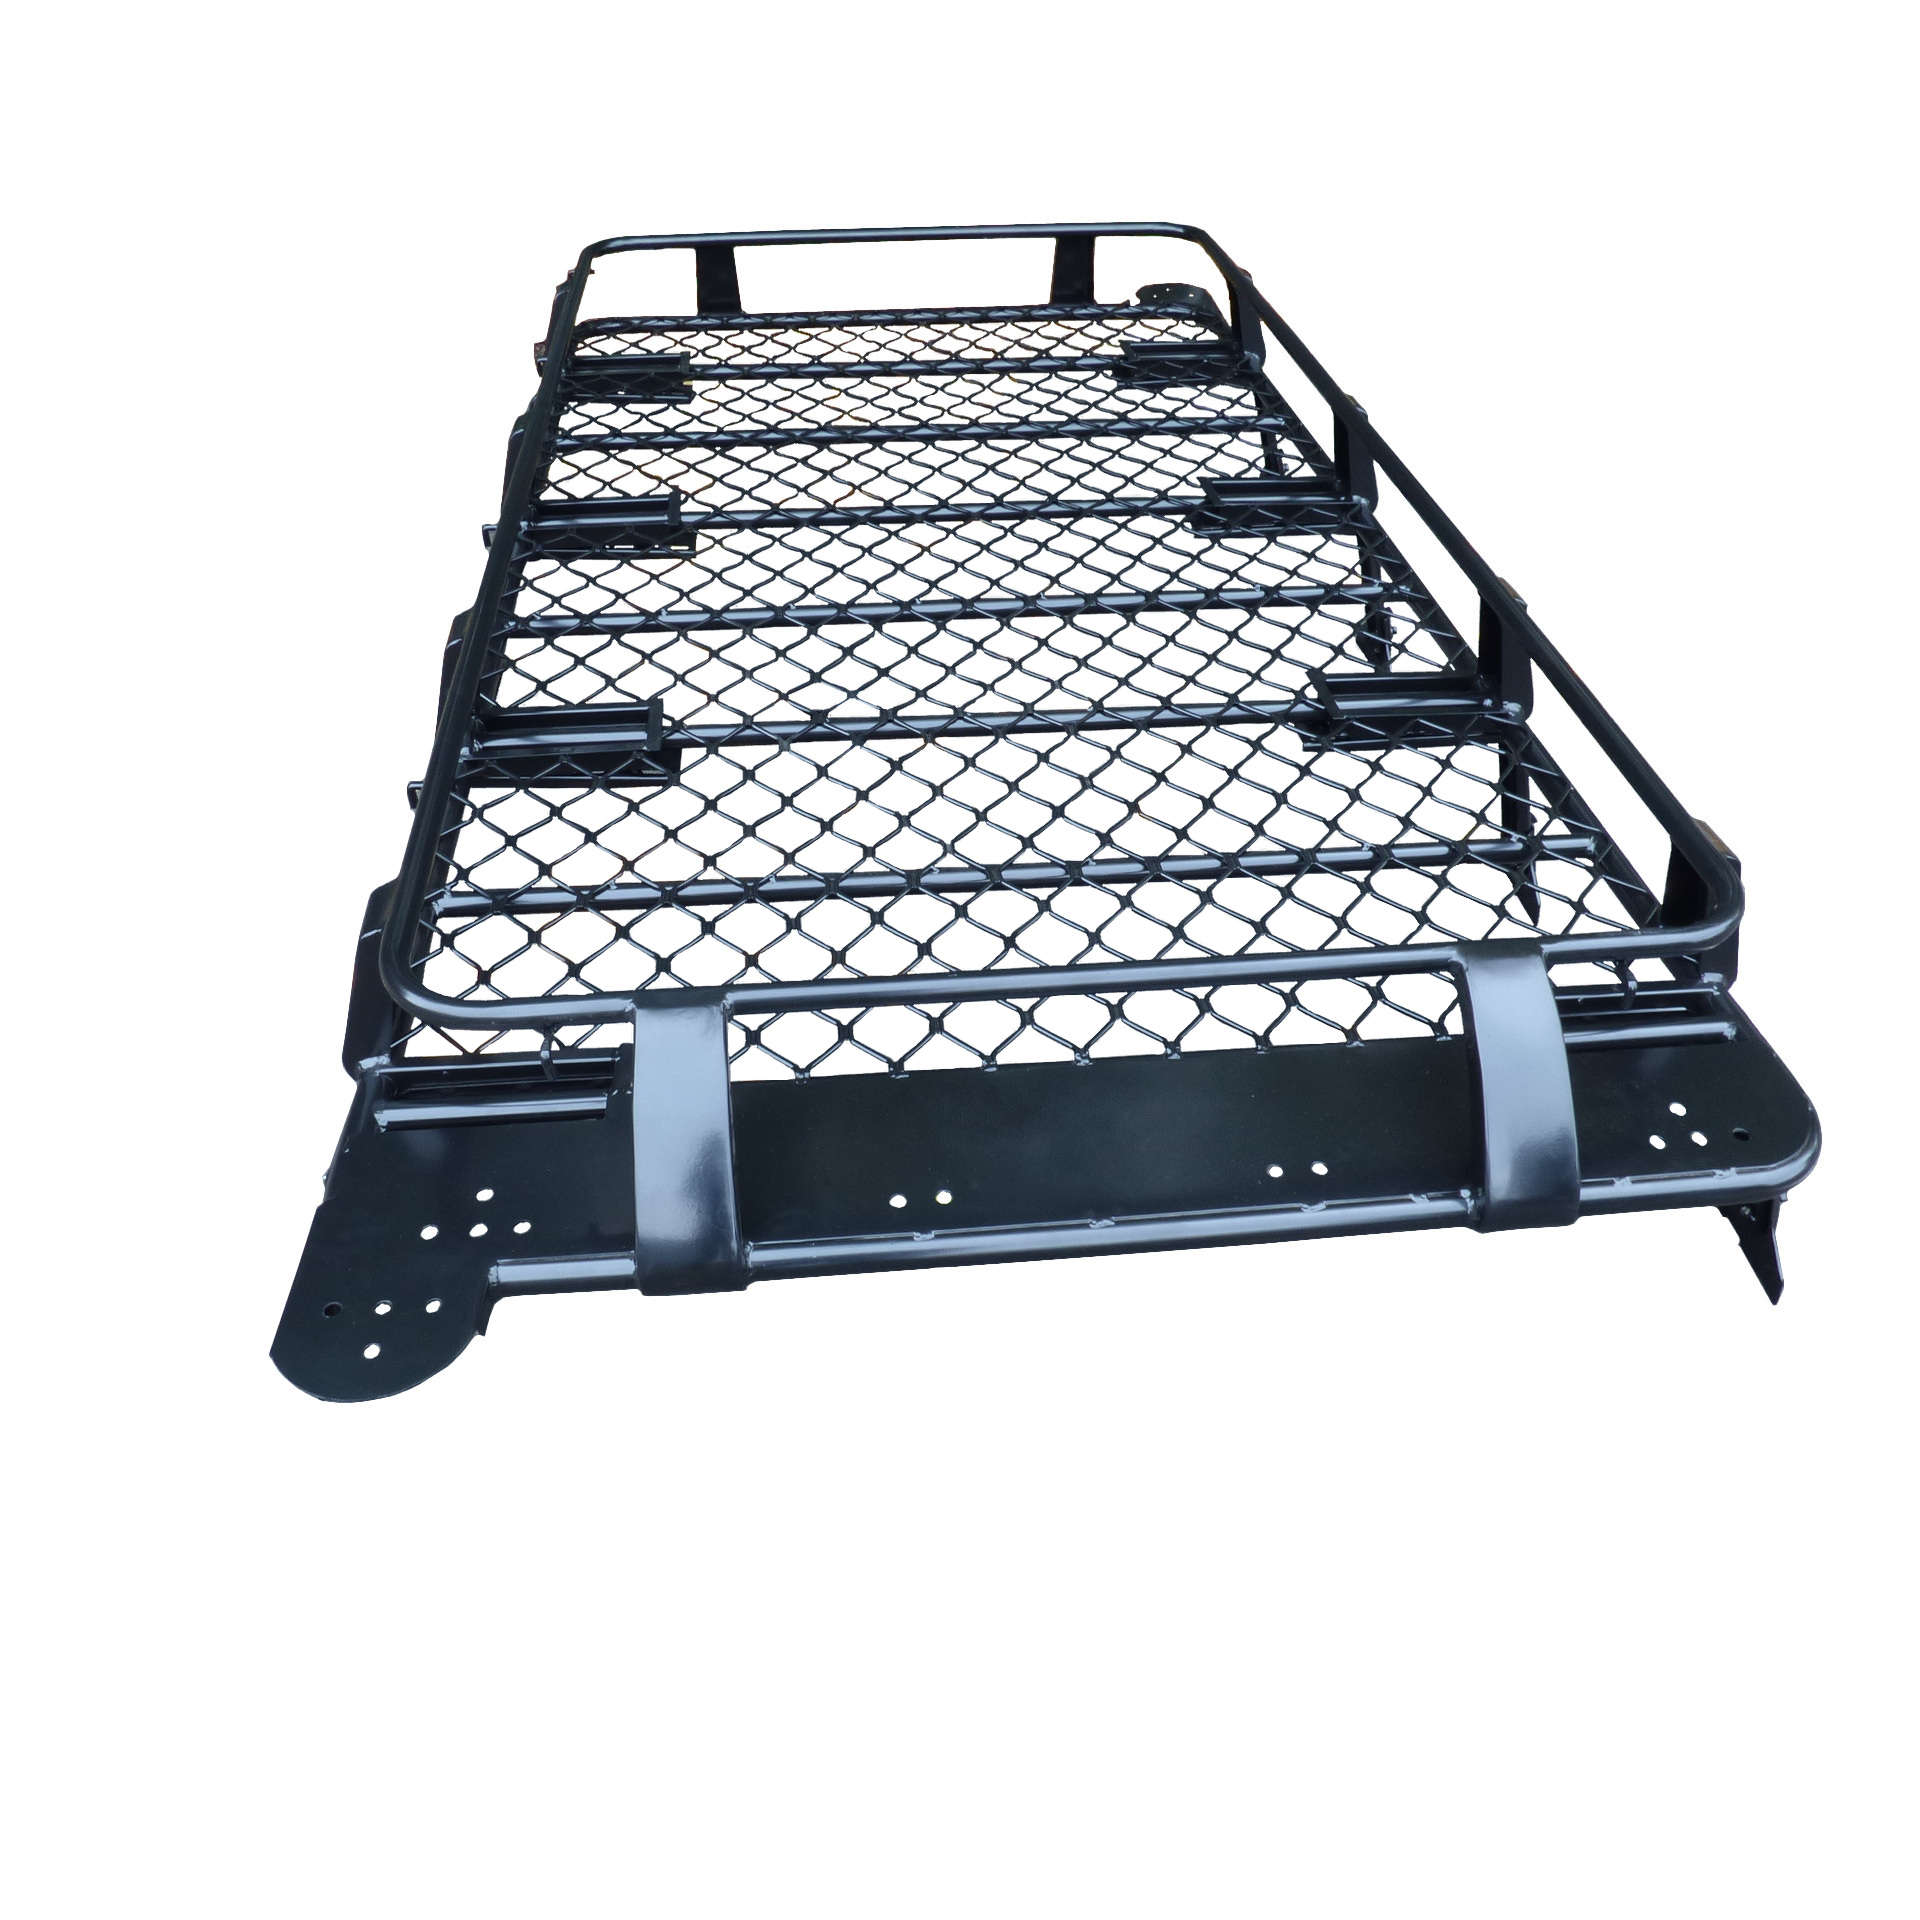 Direct4x4 Accessories UK | Expedition Aluminium Full Basket Roof Rack